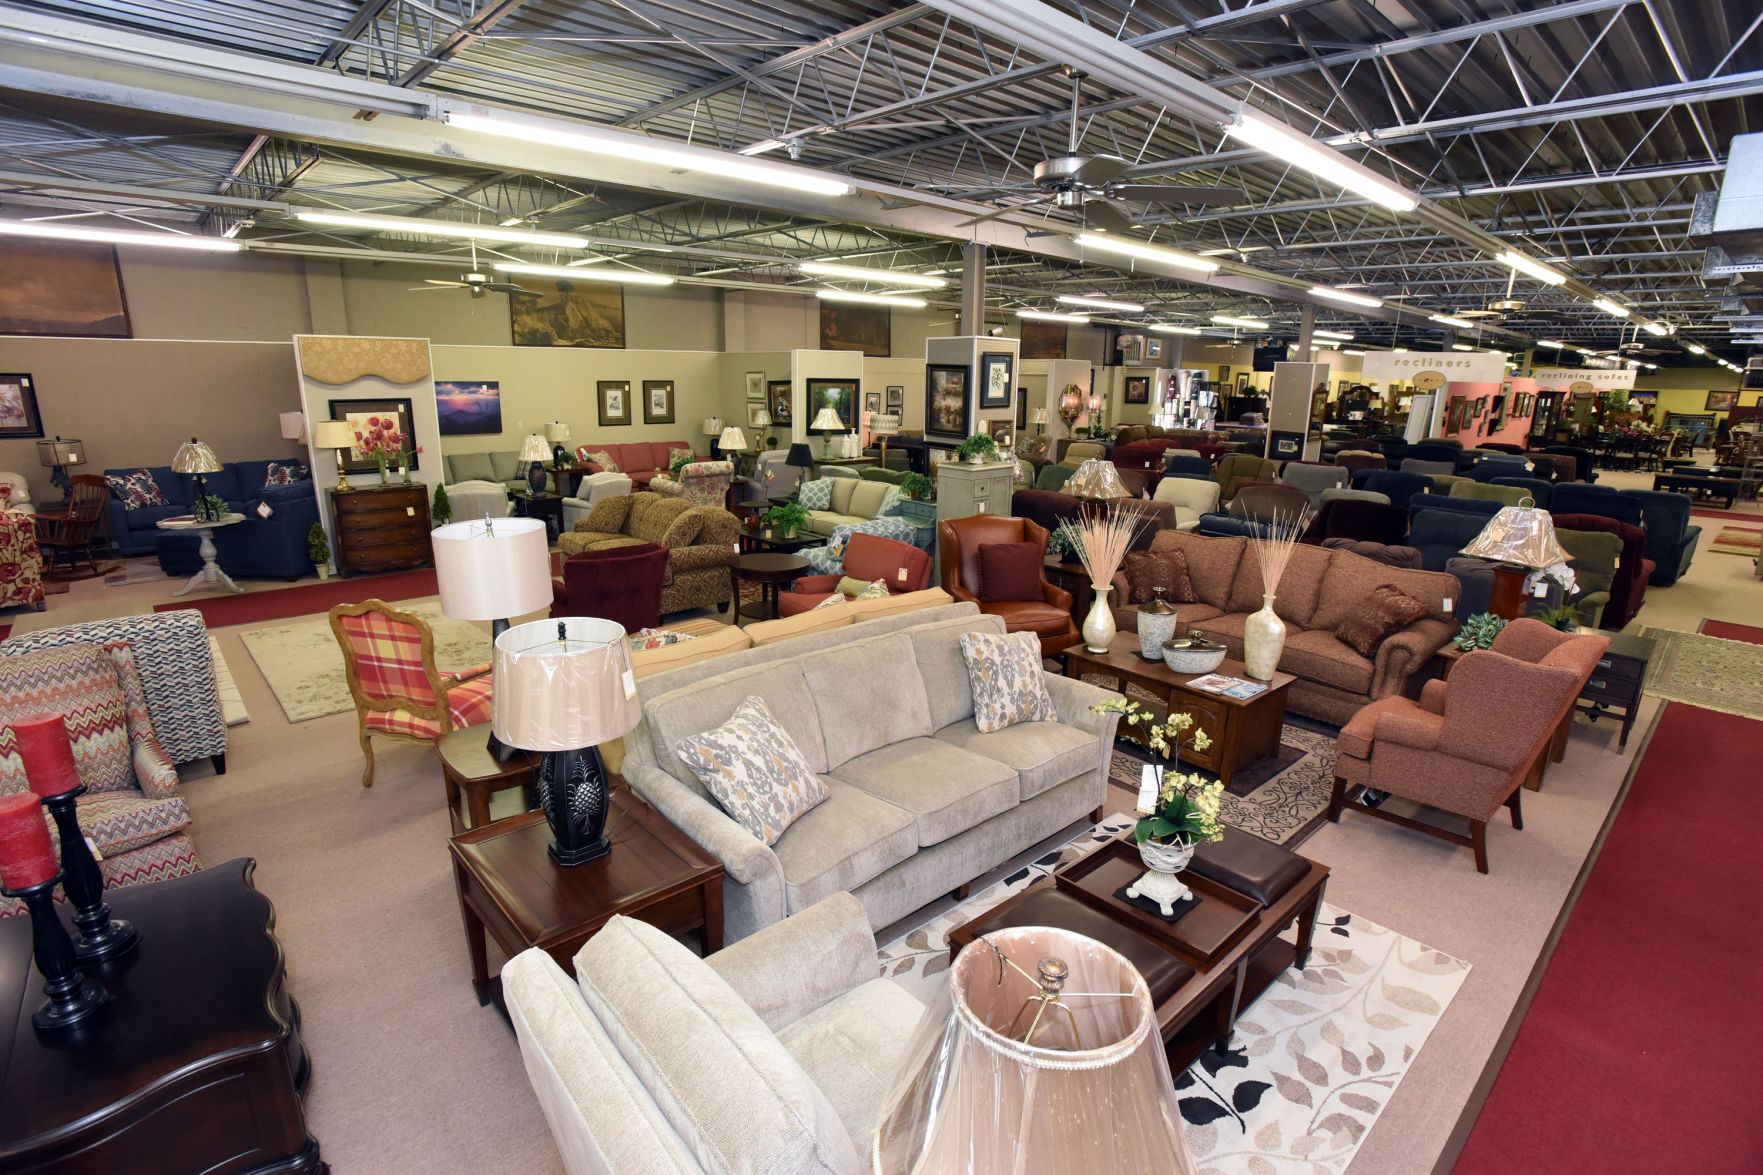 Superieur ... Marvelous Schewels Furniture Staunton Va #13   Schewels Furniture  Staunton Va Best Image Middleburgarts Org ...